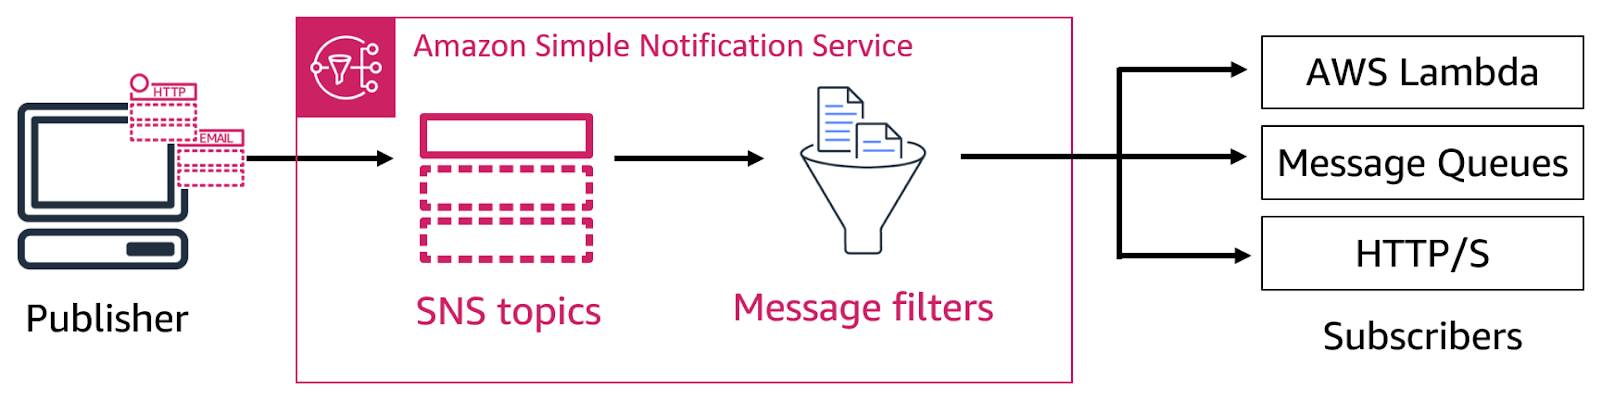 Diagram showing a publisher sending information to SNS topics that get processed through message filters and fanned out to AWS Lambda, message queues, and HTTP/S subscribers